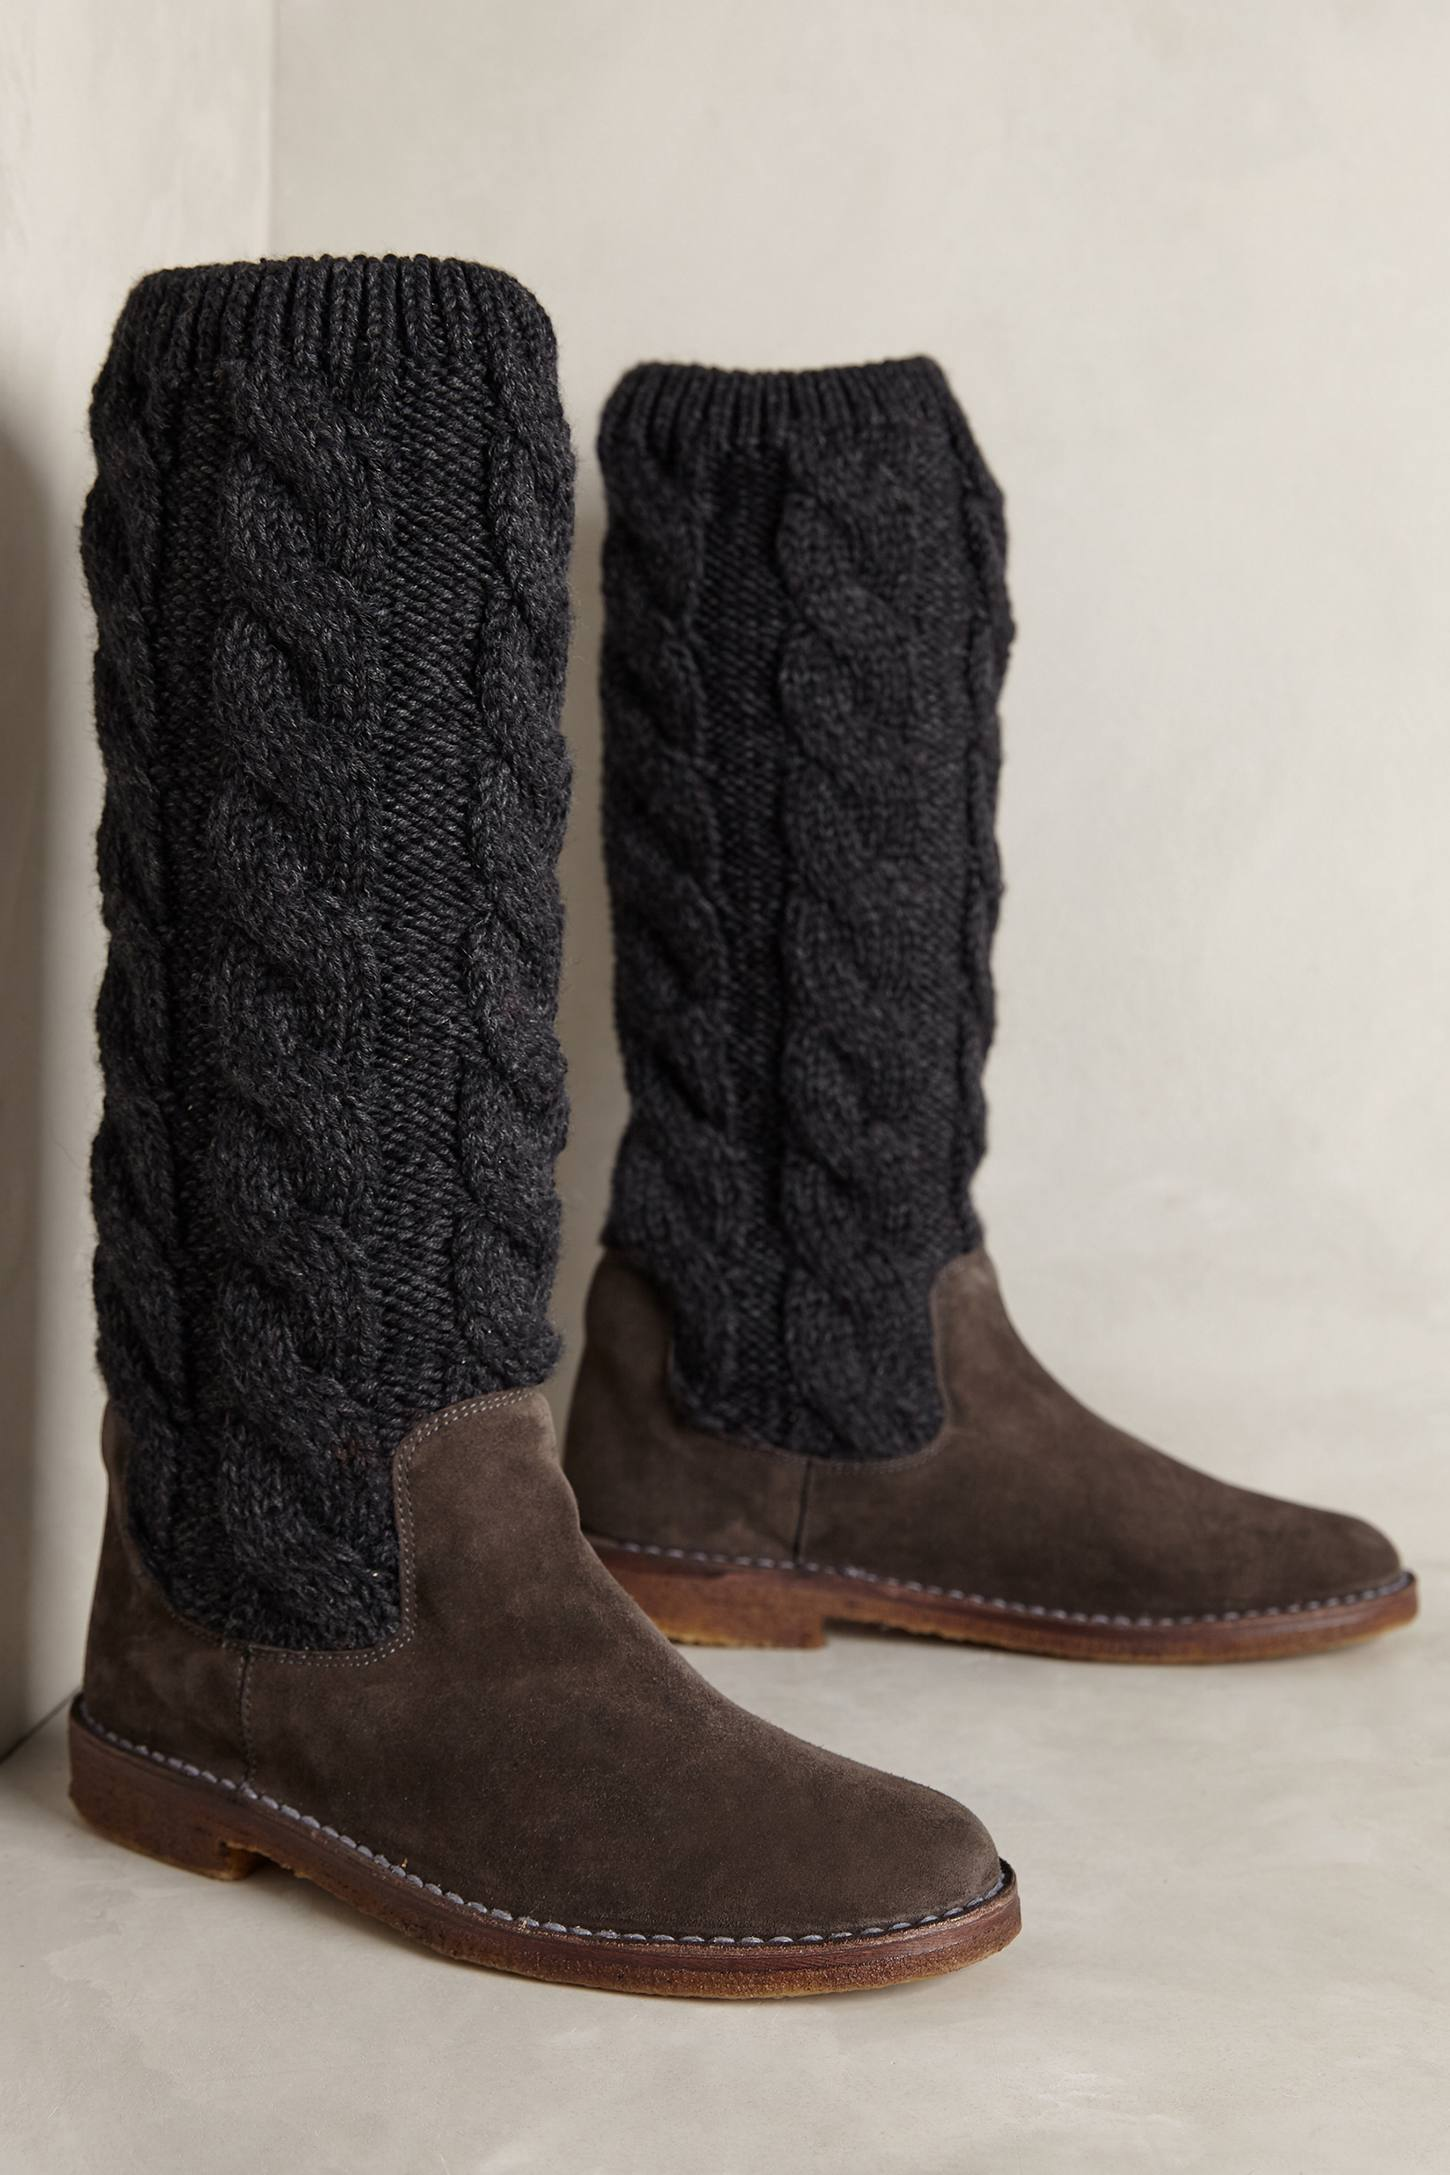 Miss Albright Cableknit Boots